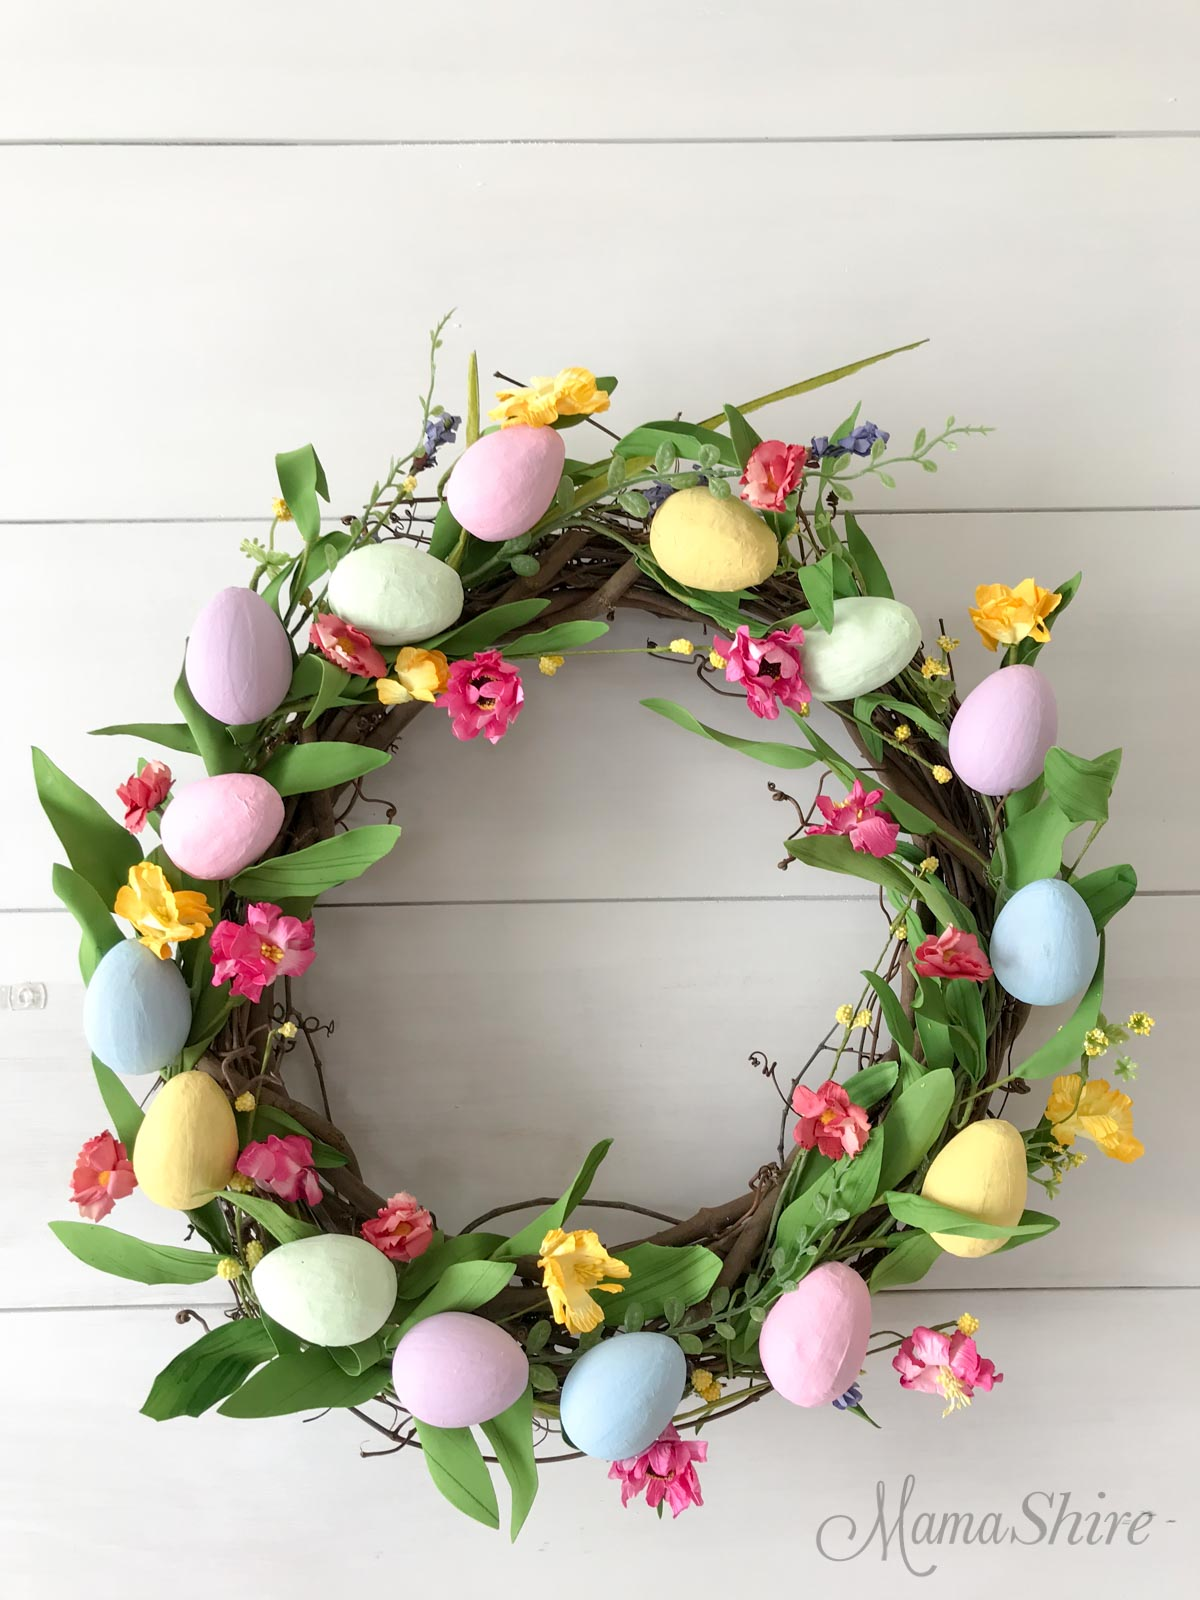 Easter Egg Wreath with flower garland and painted paper mache eggs.